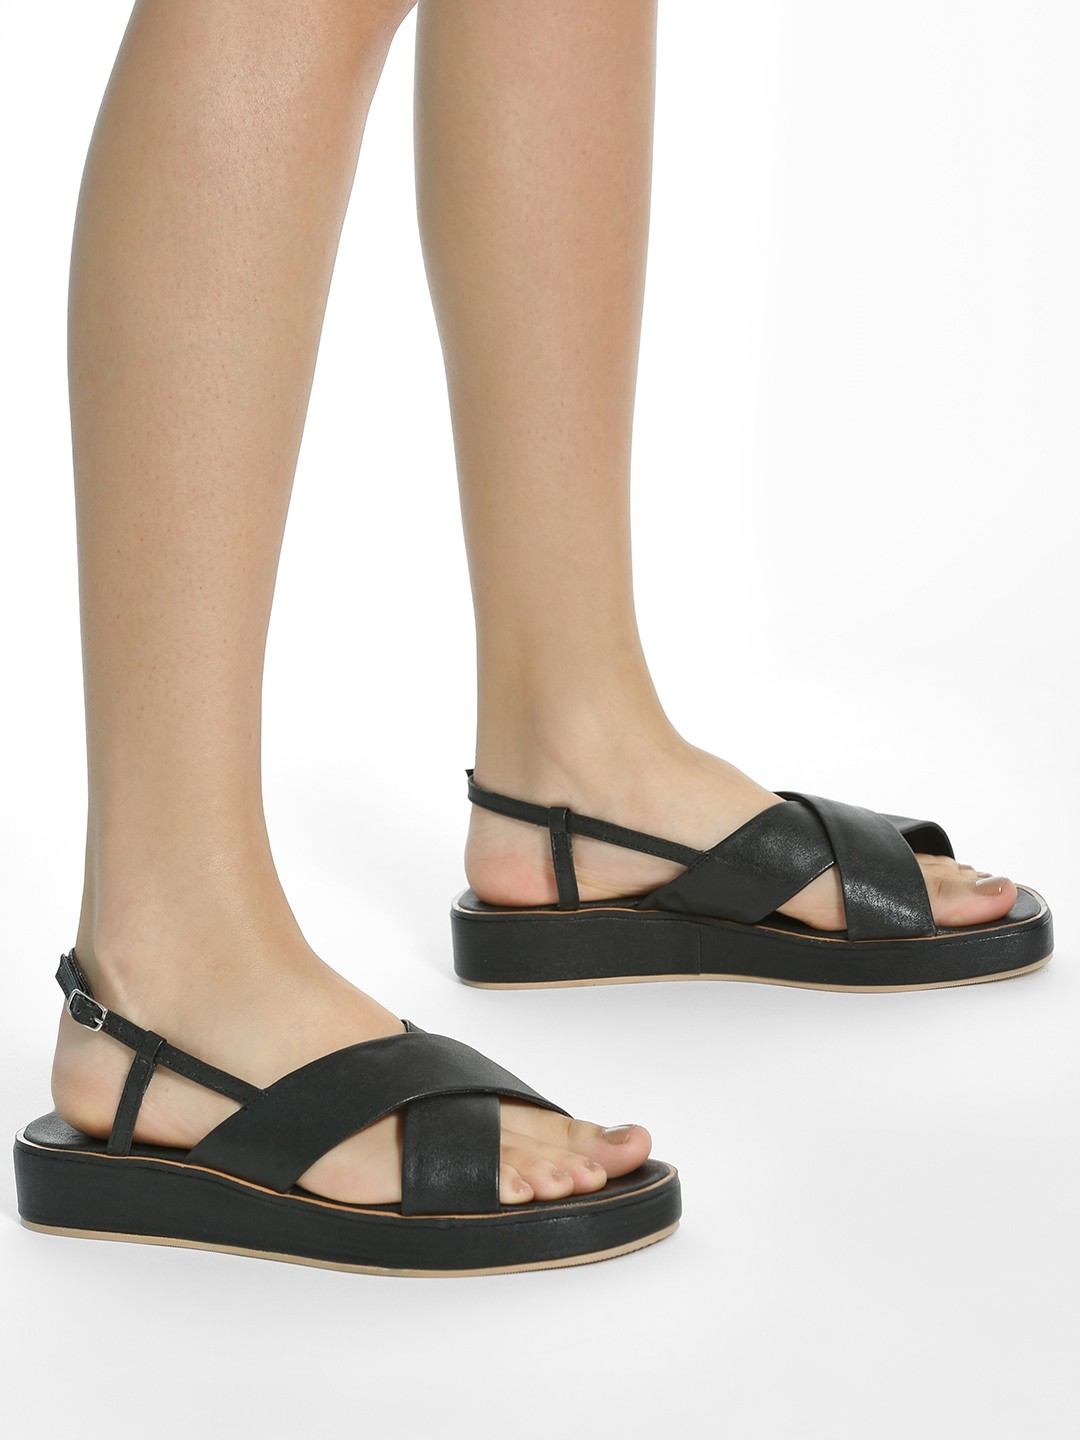 ILLIMITE Black Criss-Cross Strap Flatform Sandals 1